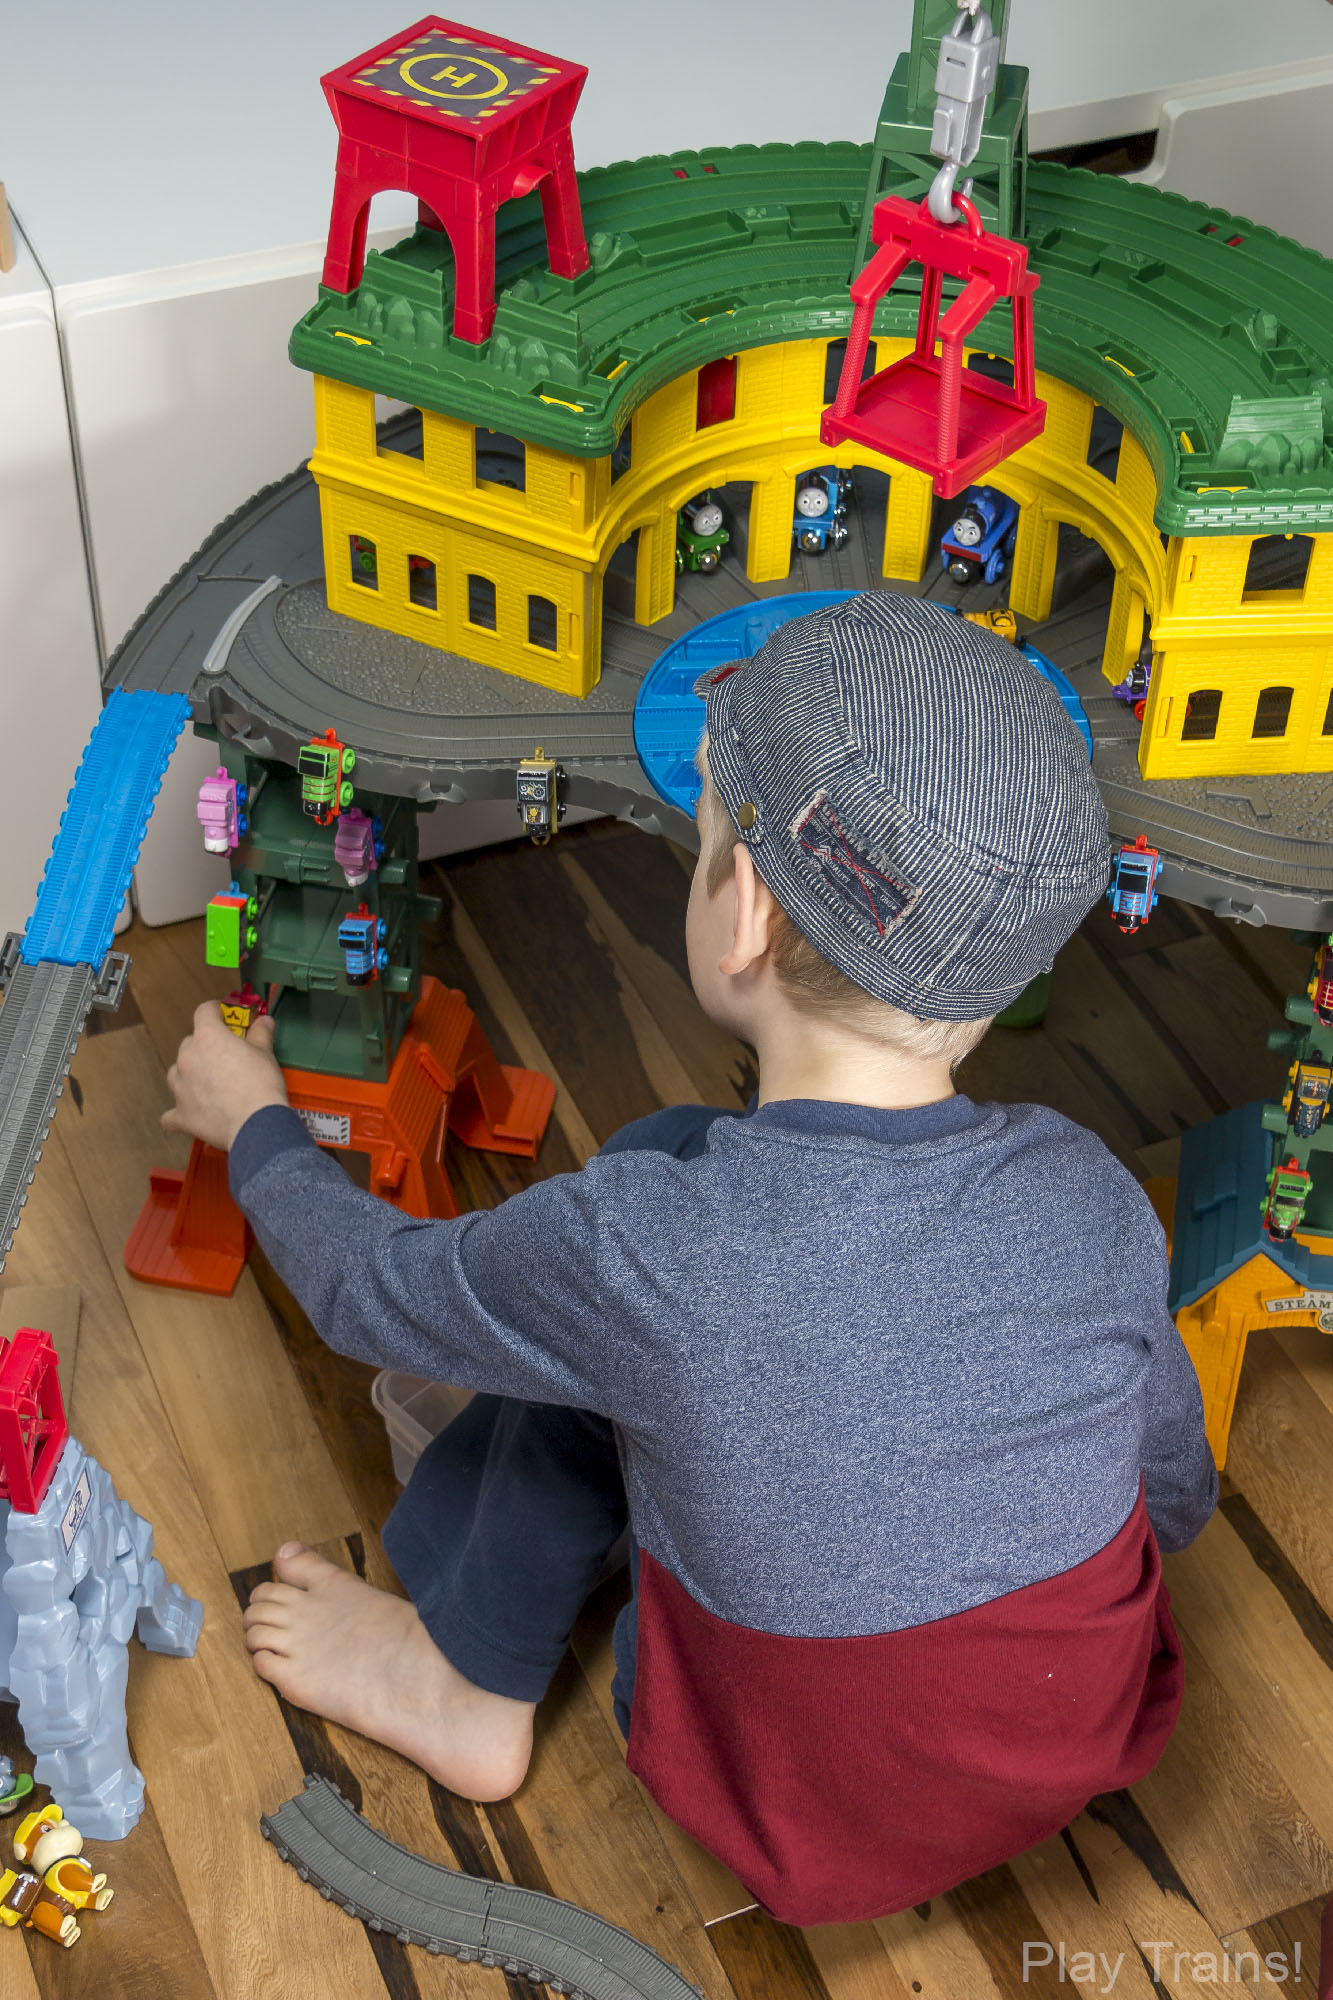 Thomas & Friends Super Station  -- The Play Trains! Guide to Wooden Train Sets: expert advice on the best wooden train set to buy for your little engineer.